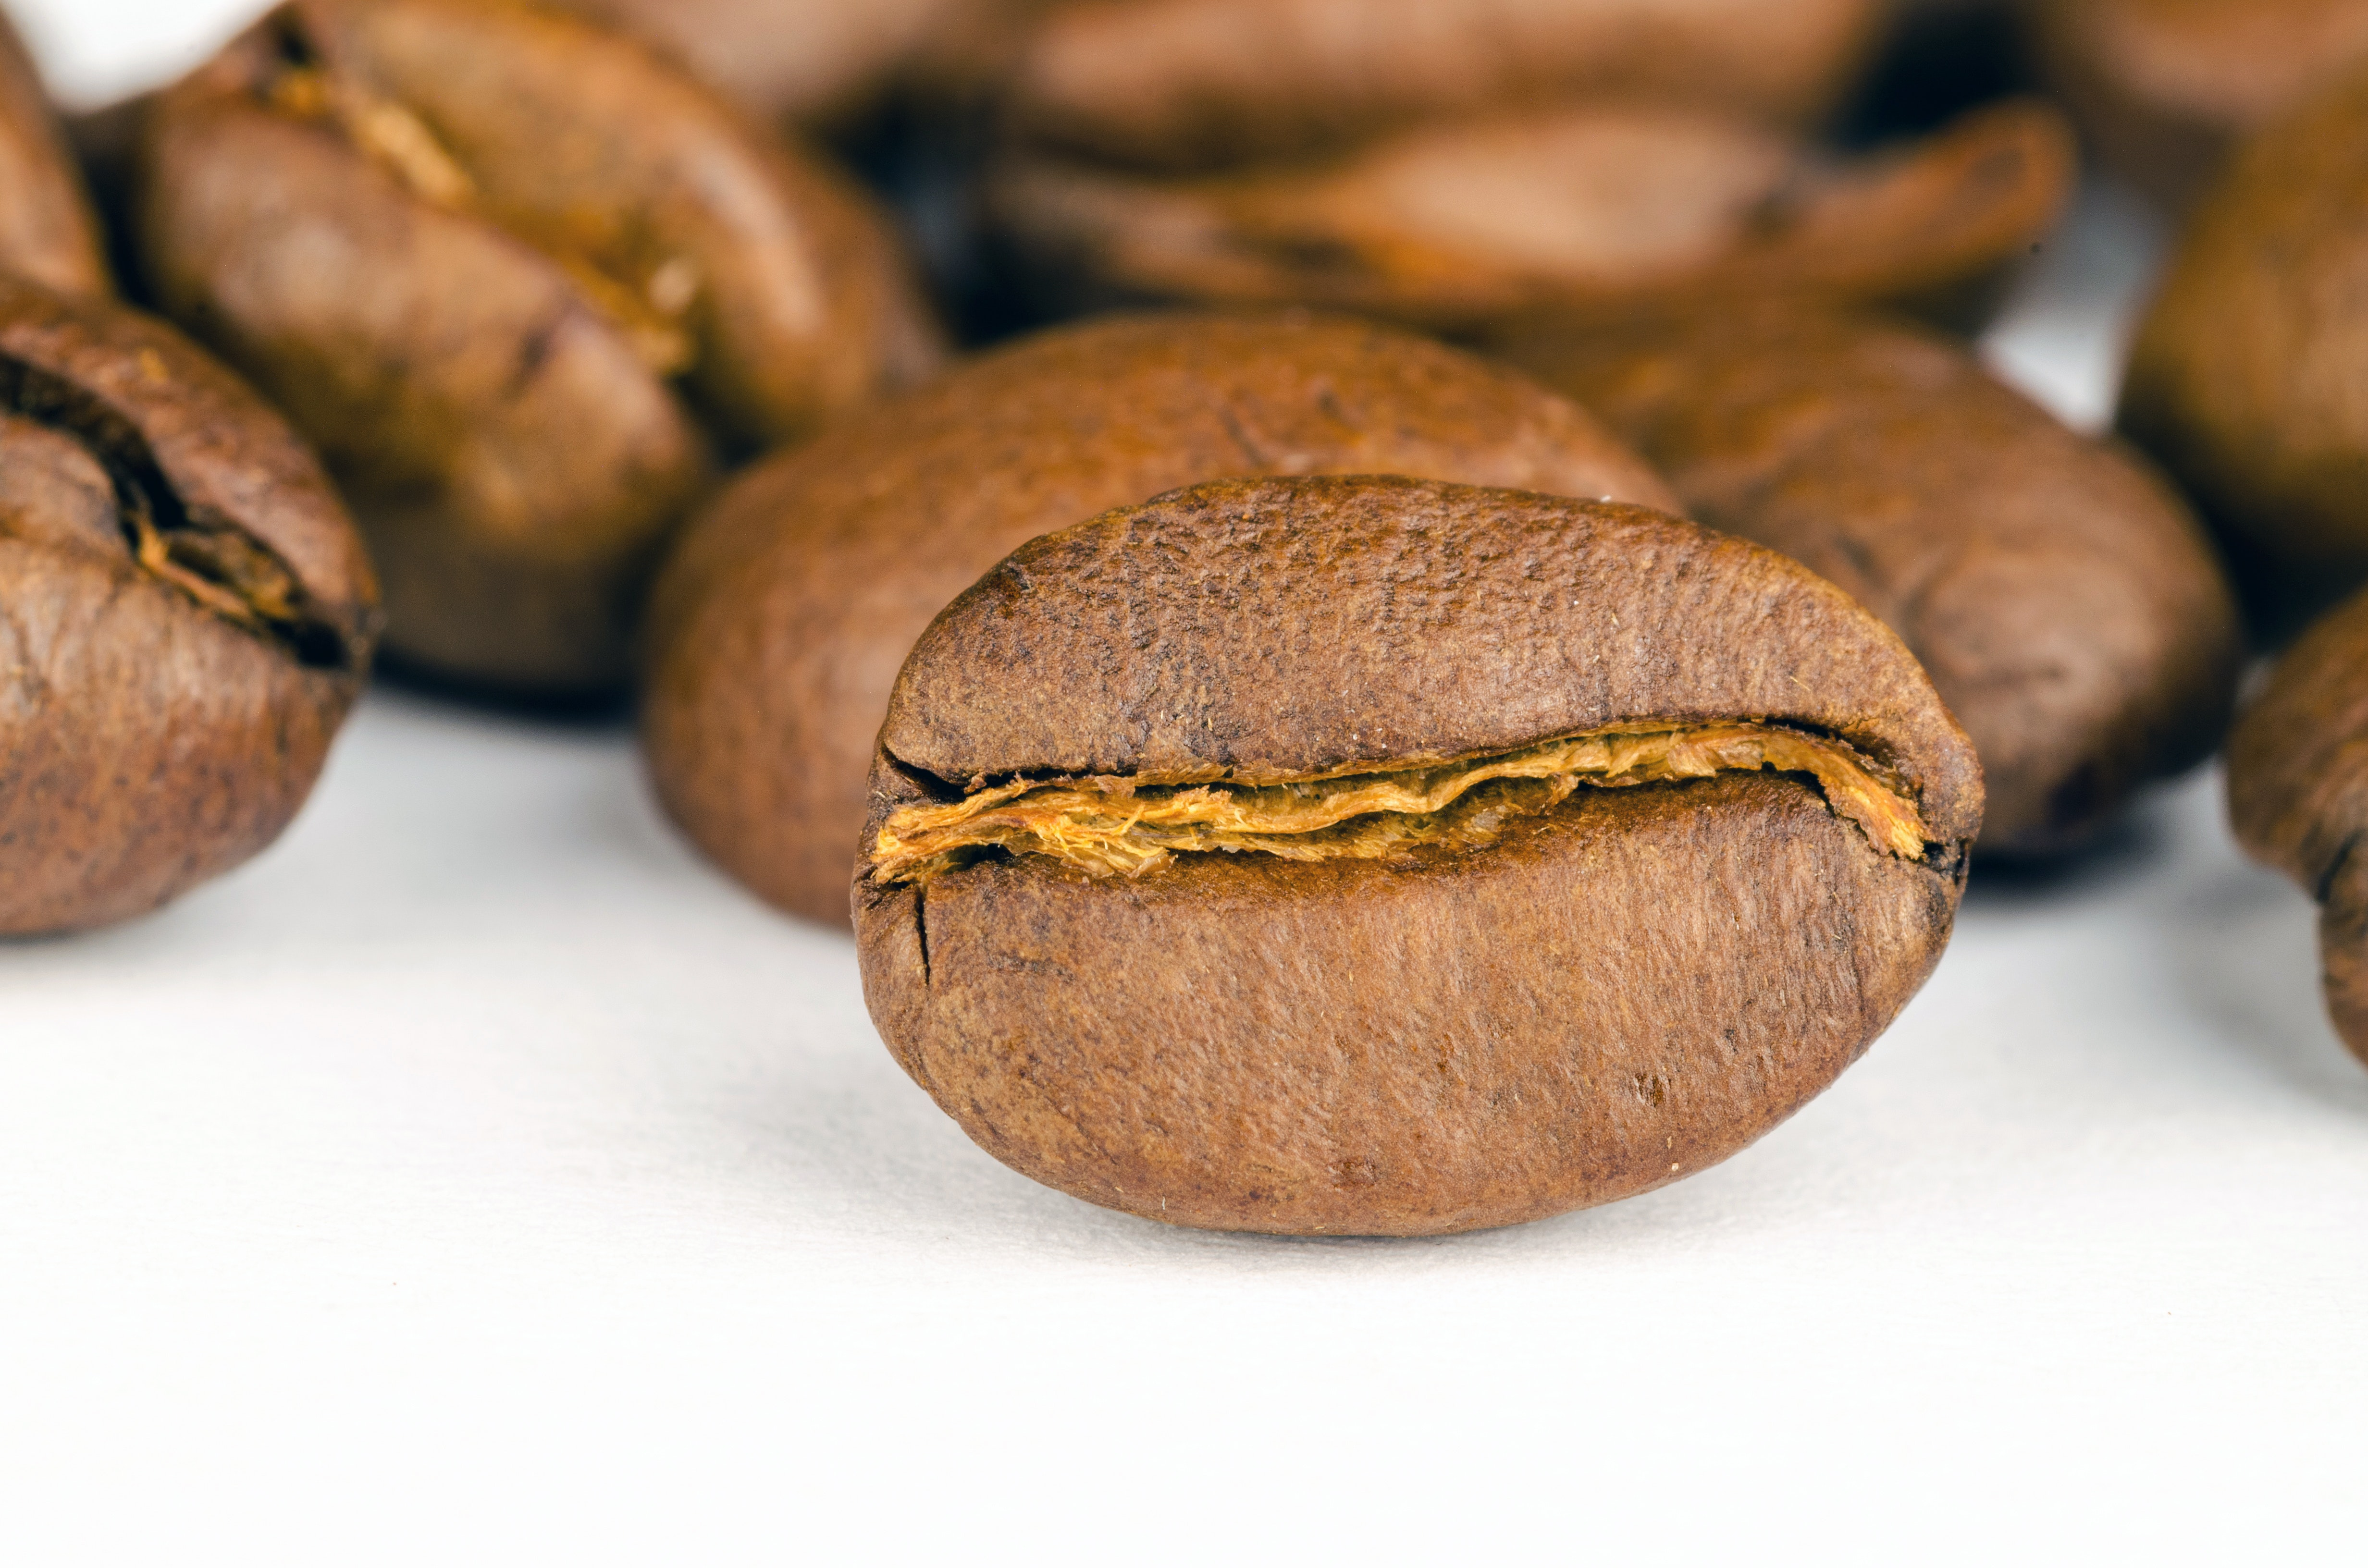 aroma-beans-blurred-background-942736